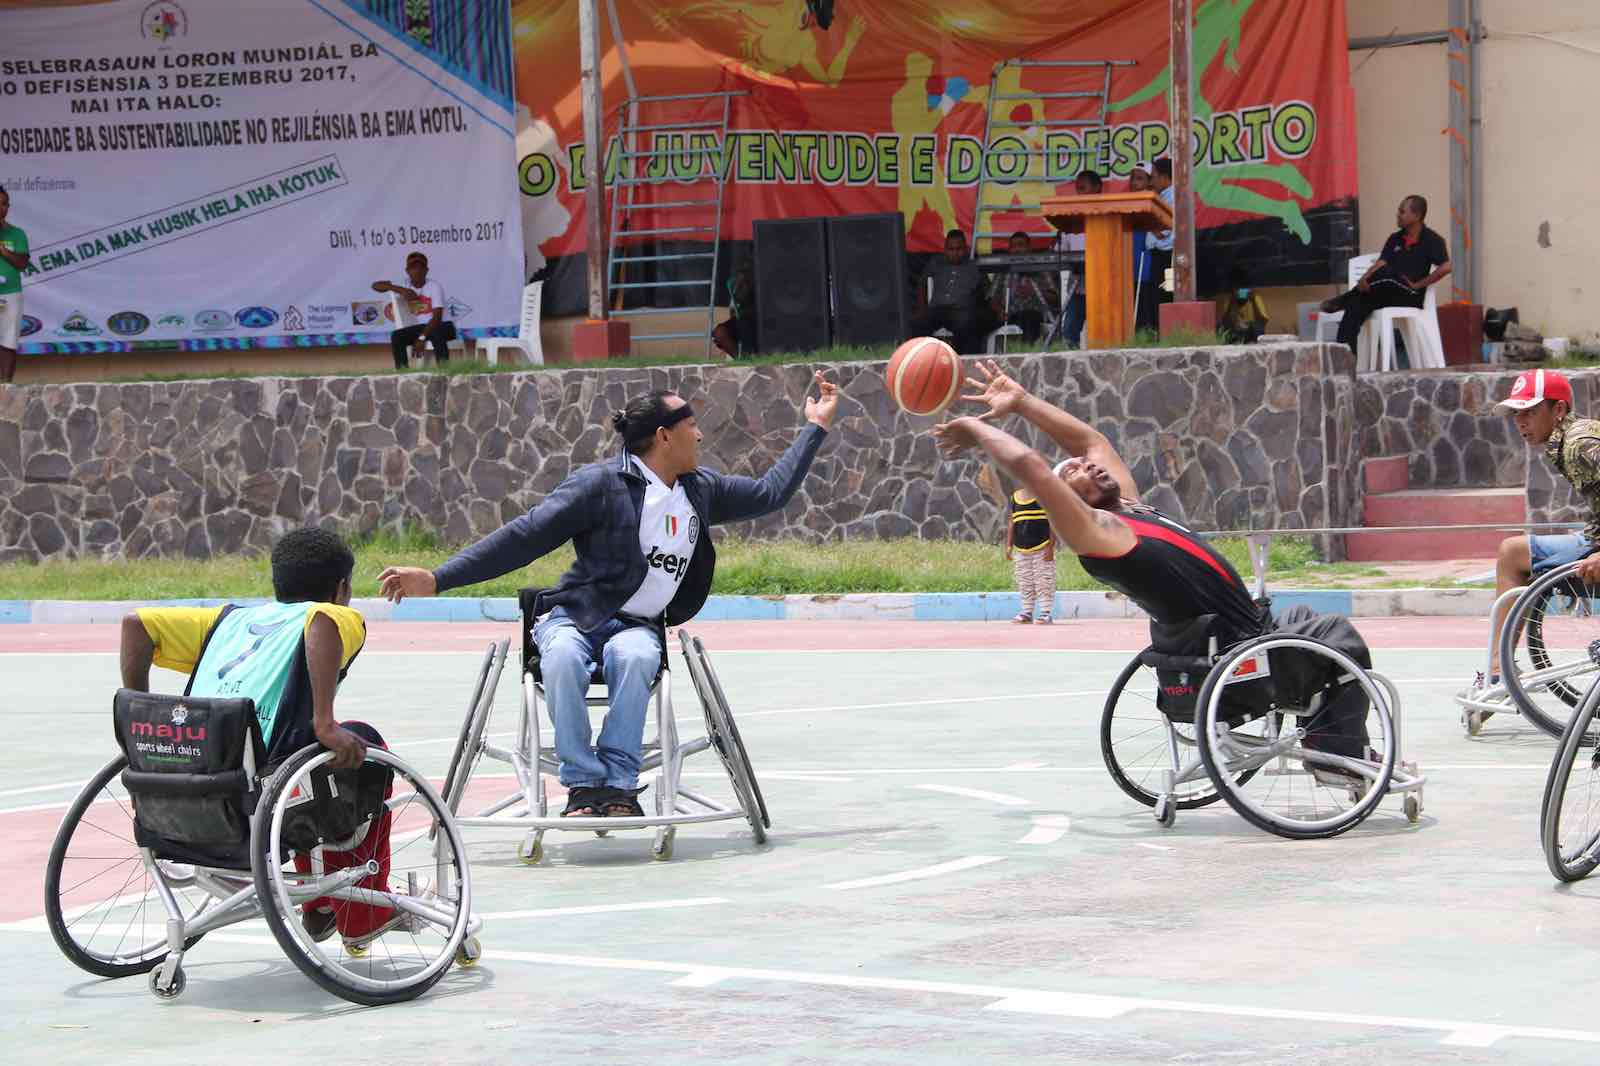 A DFAT-sponsored event in Timor-Leste to promote the rights of persons with disability, Dili, July 2017 (Department of Foreign Affairs and Trade/Flickr)